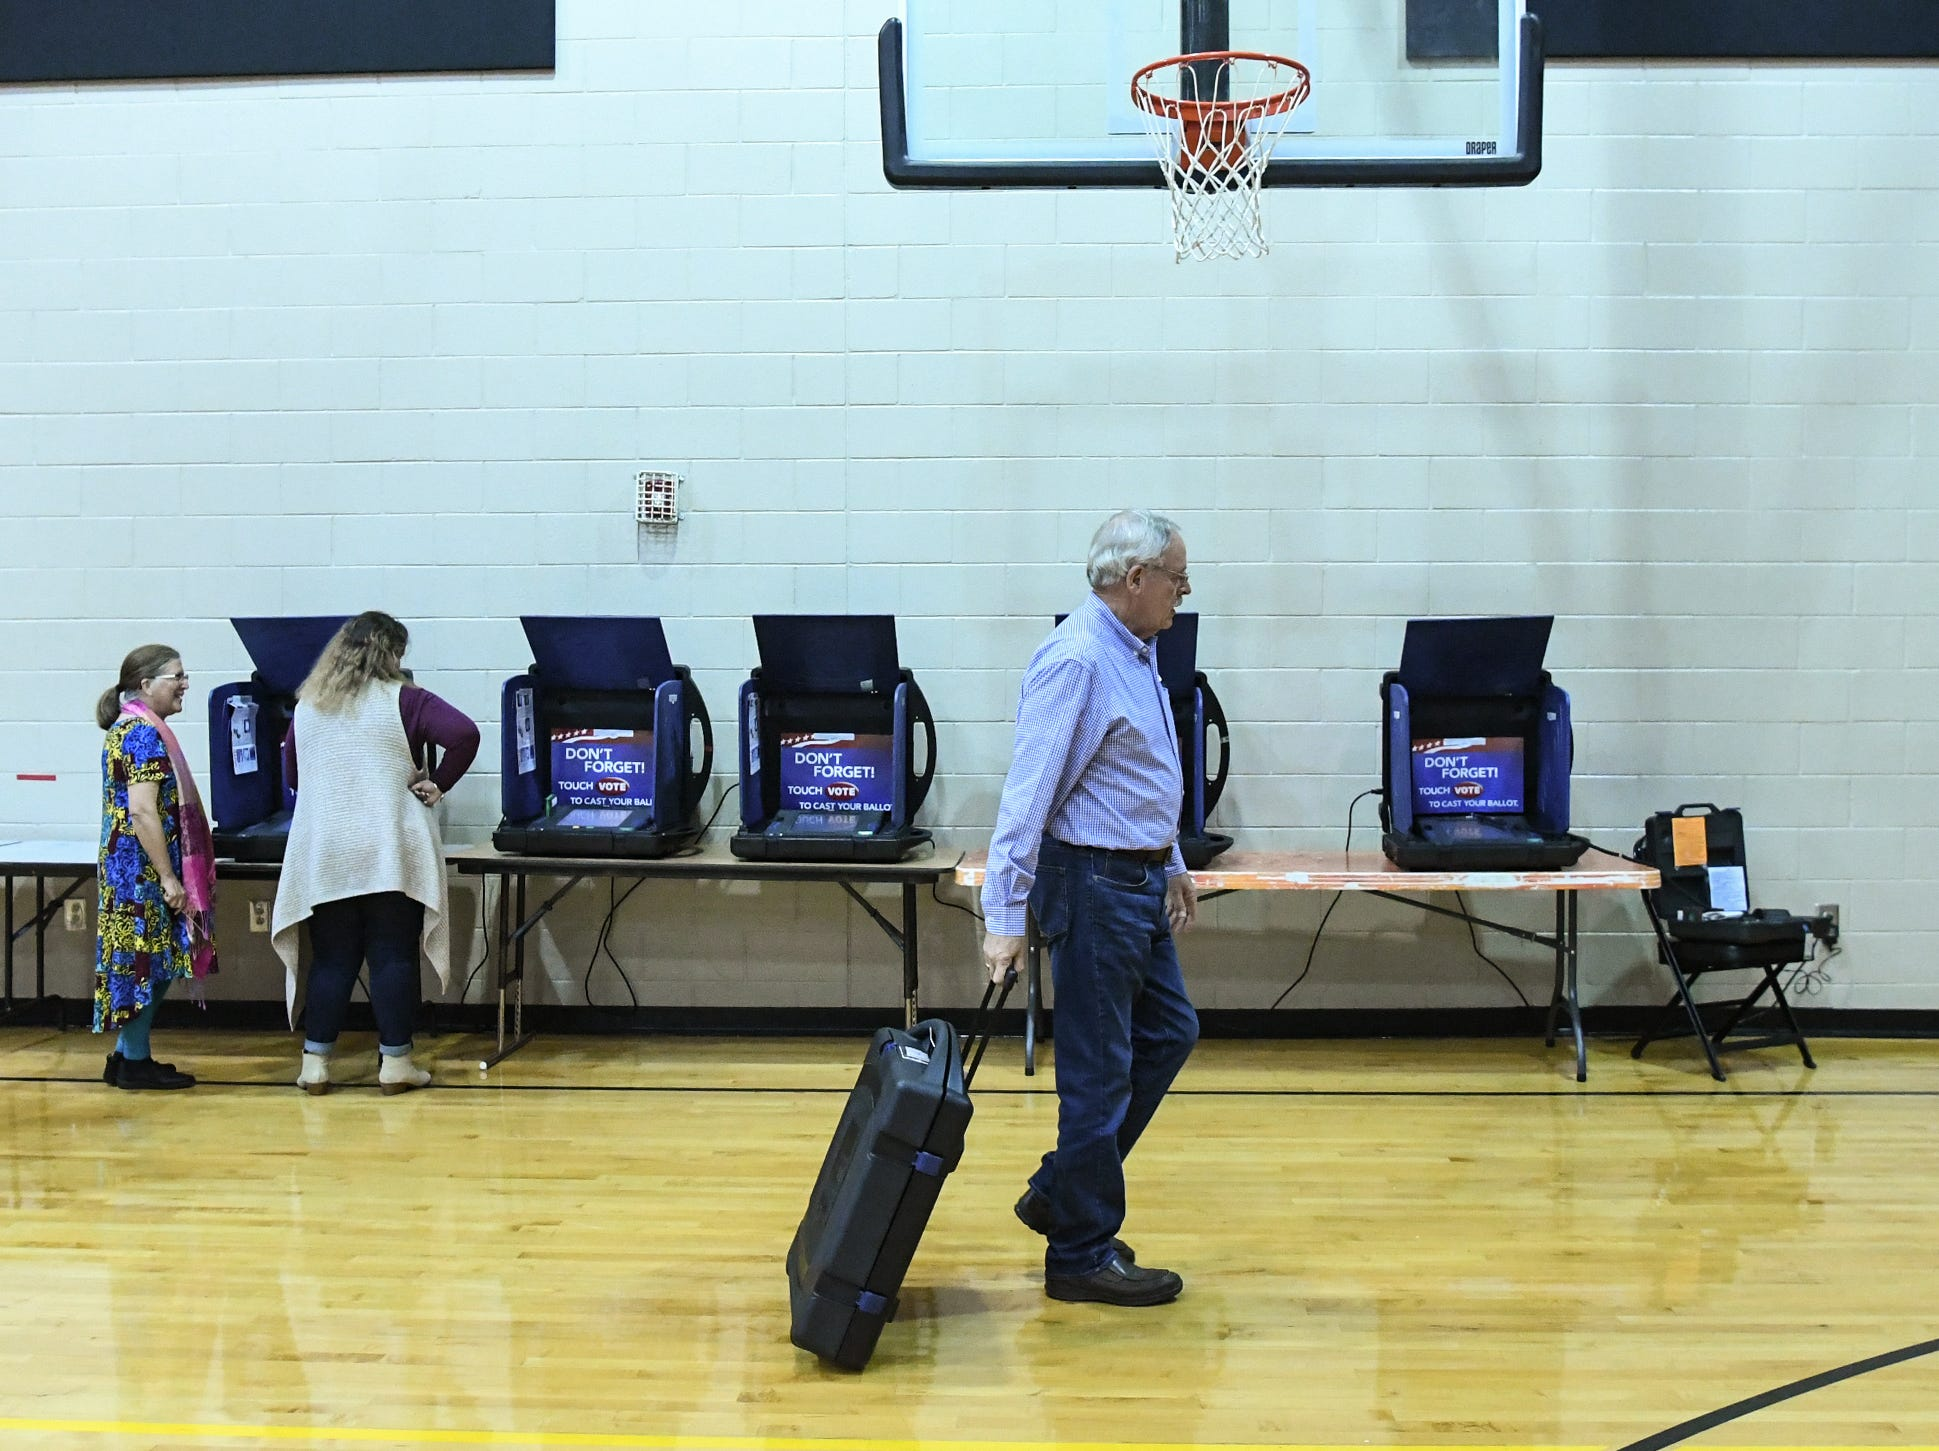 Ray Calhoun, a poll manager at Hopewell precinct at T.L. Hanna High School, rolls one of the voting booths to return to storage, after totals on a memory card were removed after 7 p.m., in Anderson on Tuesday, November 6, 2018.